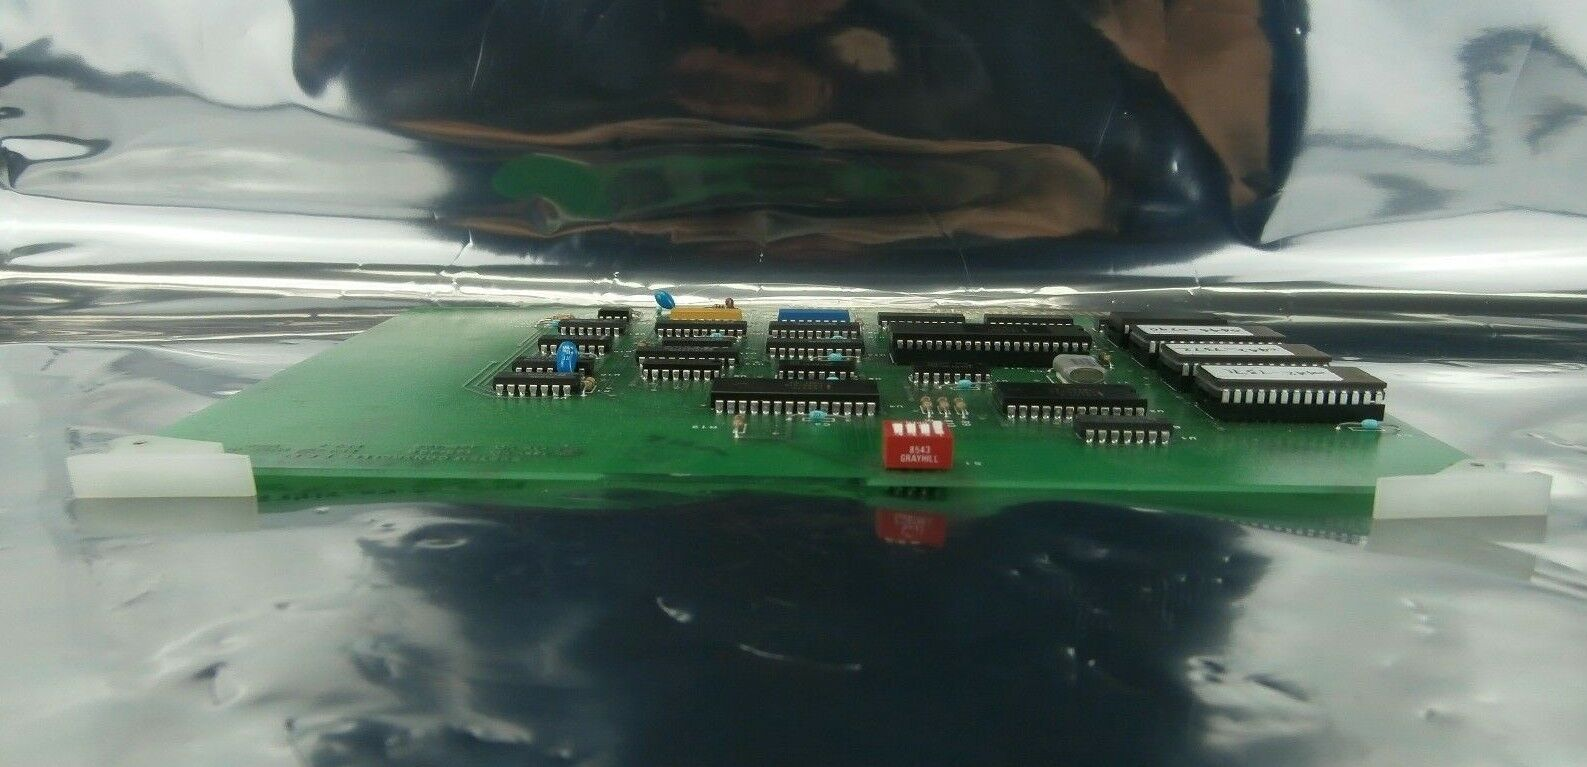 SCI Solid Controls 428-406 System Controller PCB Card 428-405 Used Working